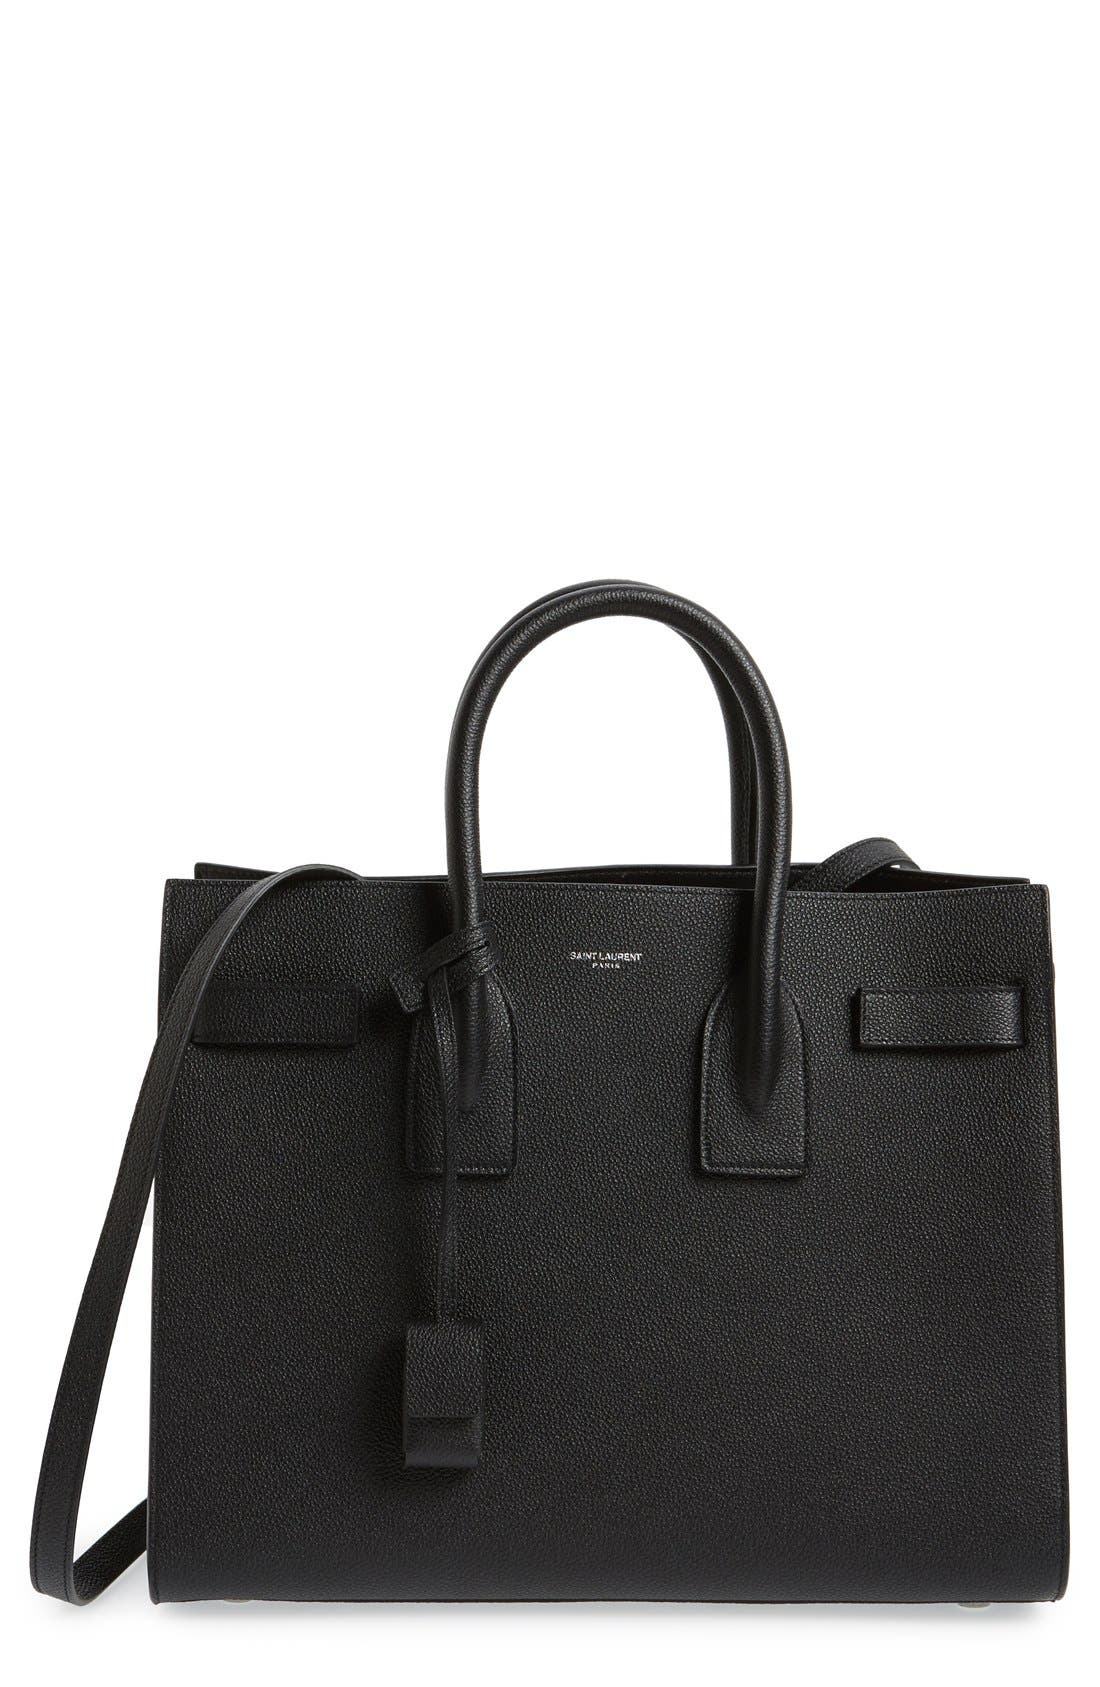 Saint Laurent 'Small Sac de Jour' Leather Tote